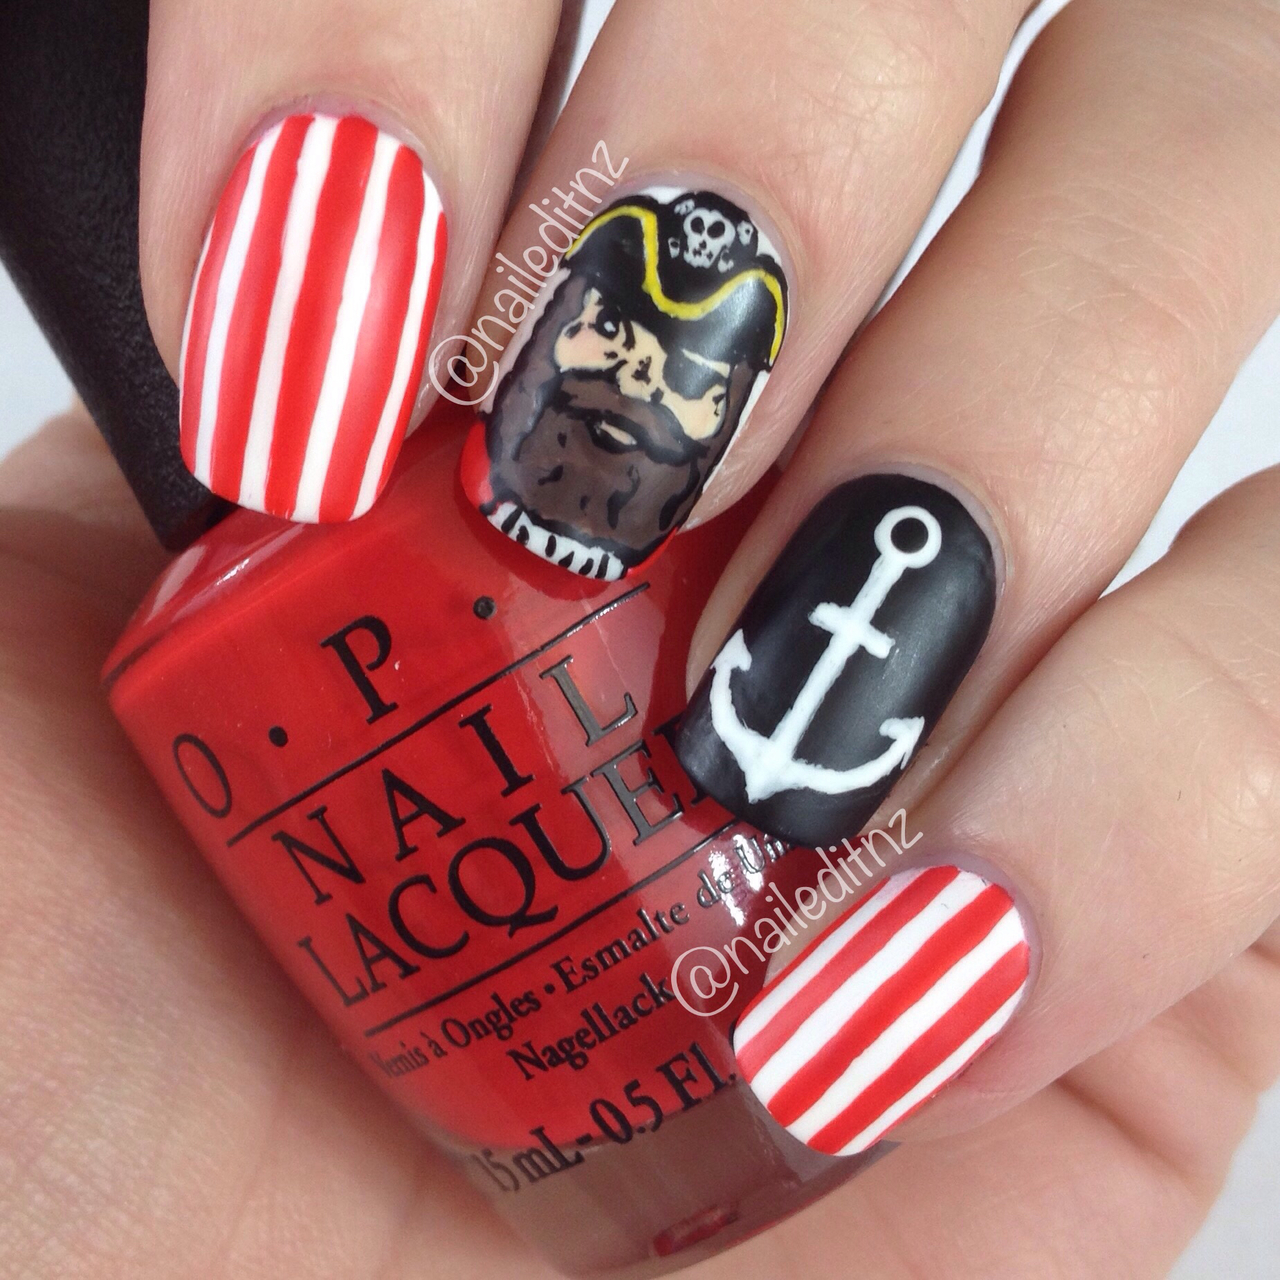 Pirate nail art by Nailed It NZ - - image #2965594 by marine21 on